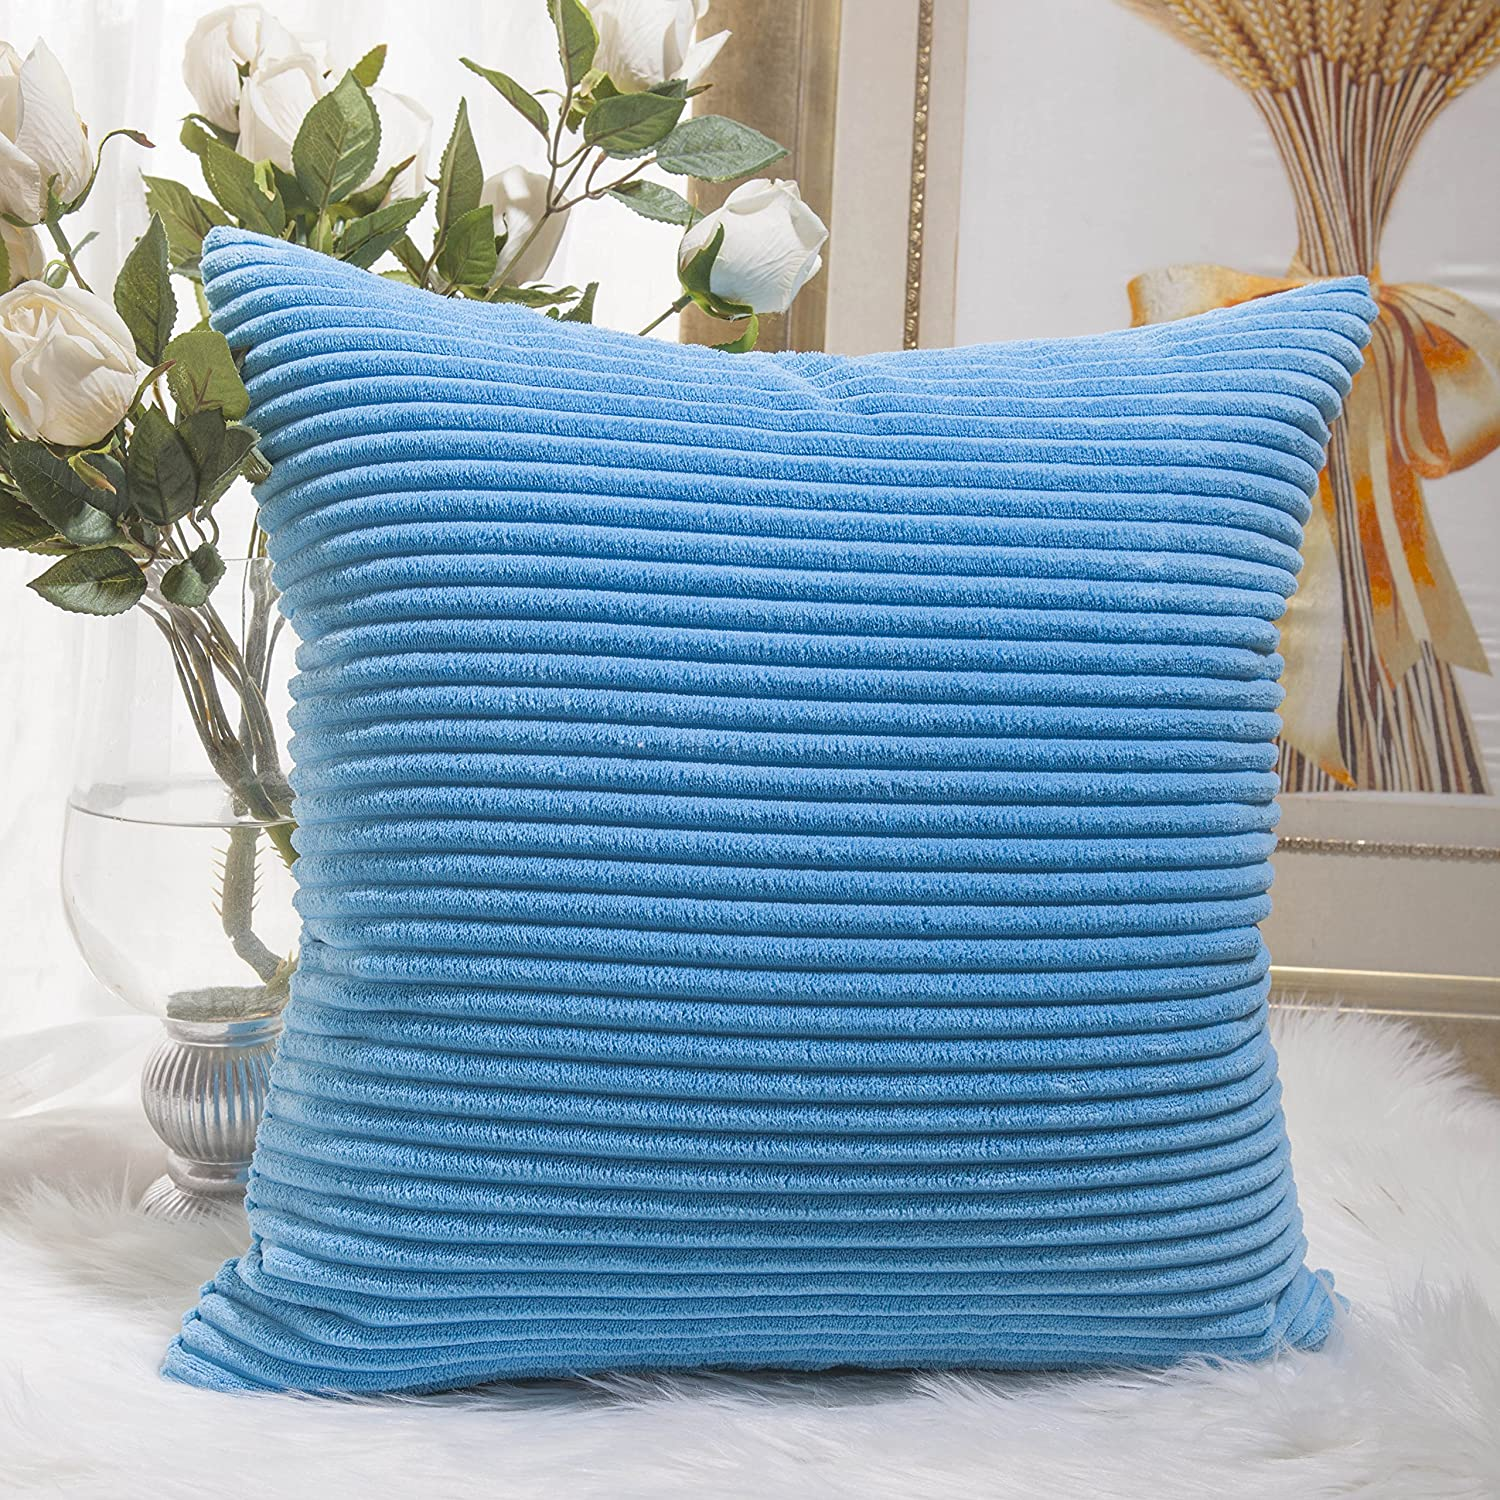 Home Brilliant Super Soft Large Euro Sham Throw Pillows Cushion Cover Velvet for Bench, 26 x 26 inch (66cm), Turquoise